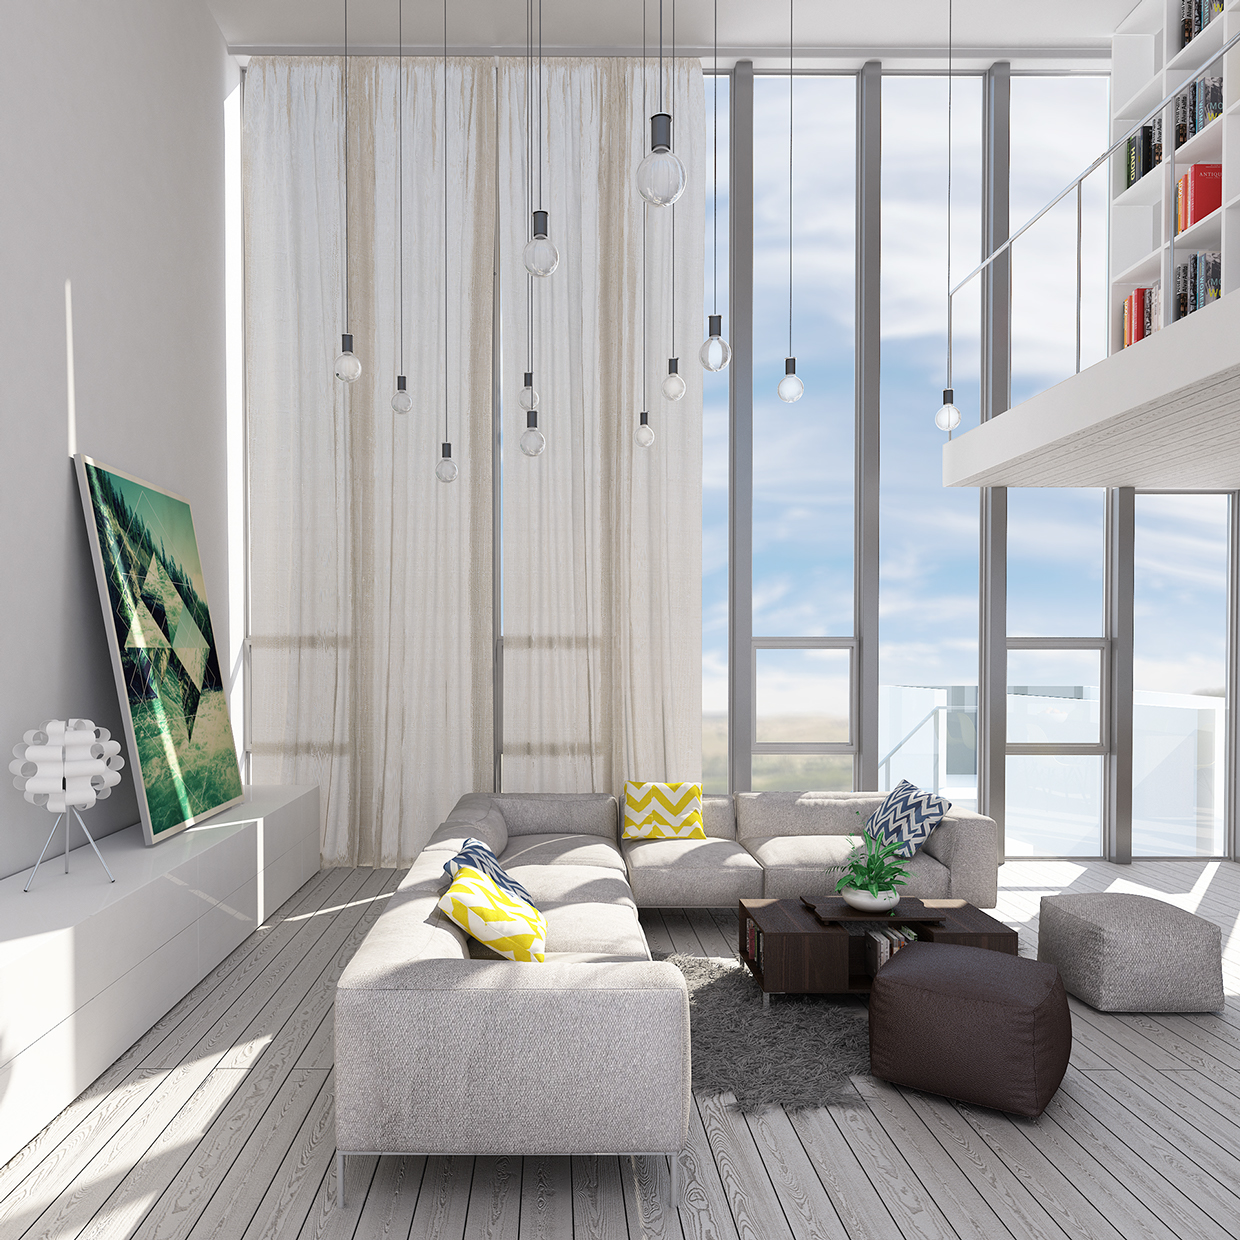 Uncategorized Clean Interiors wondrous white three lofts with clean bright interiors